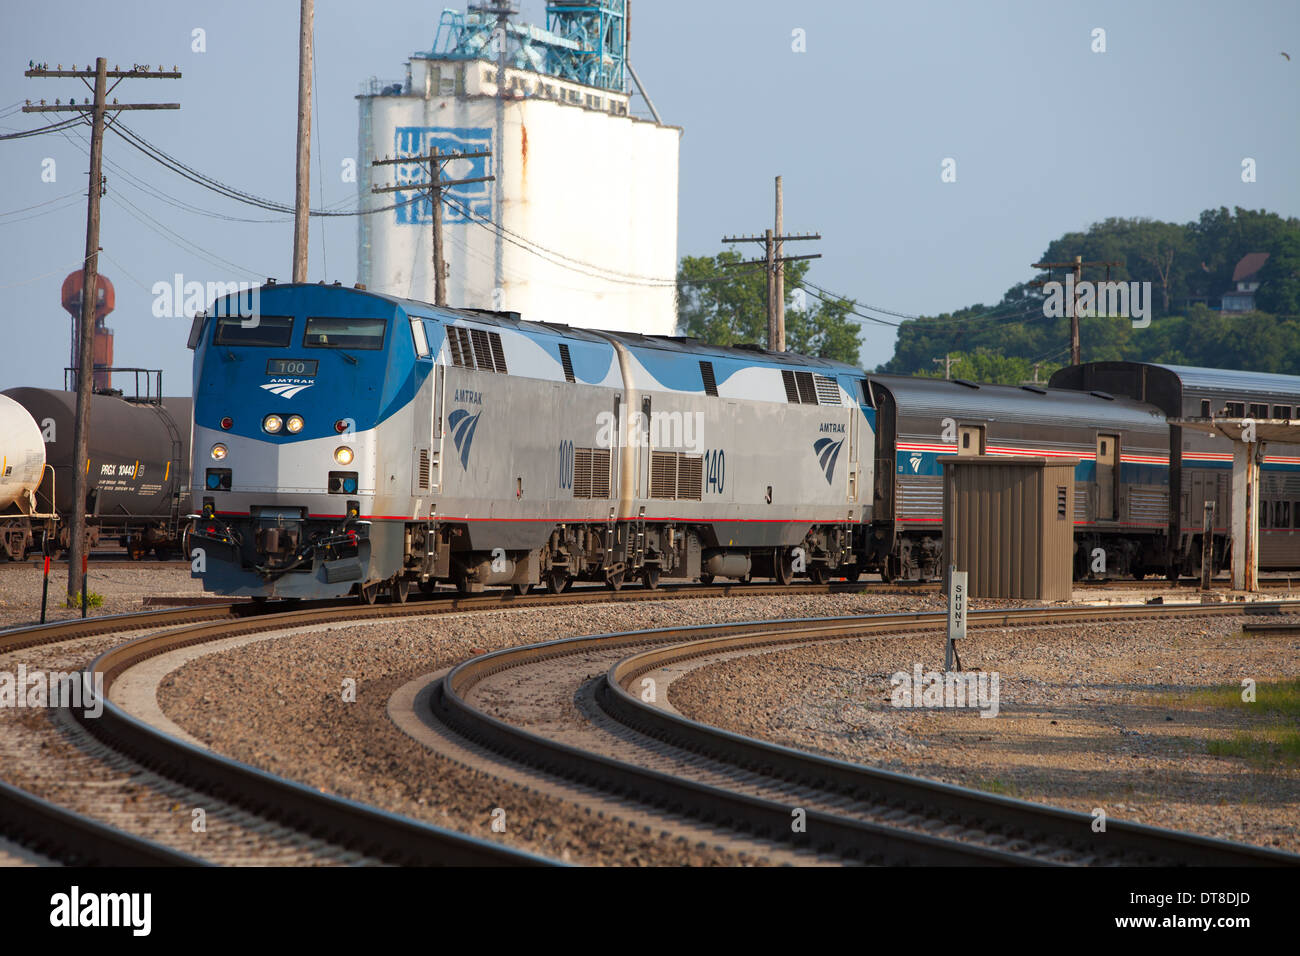 The westbound Amtrak California Zephyr makes a brief station stop at Burlington, IA before heading for Denver. - Stock Image